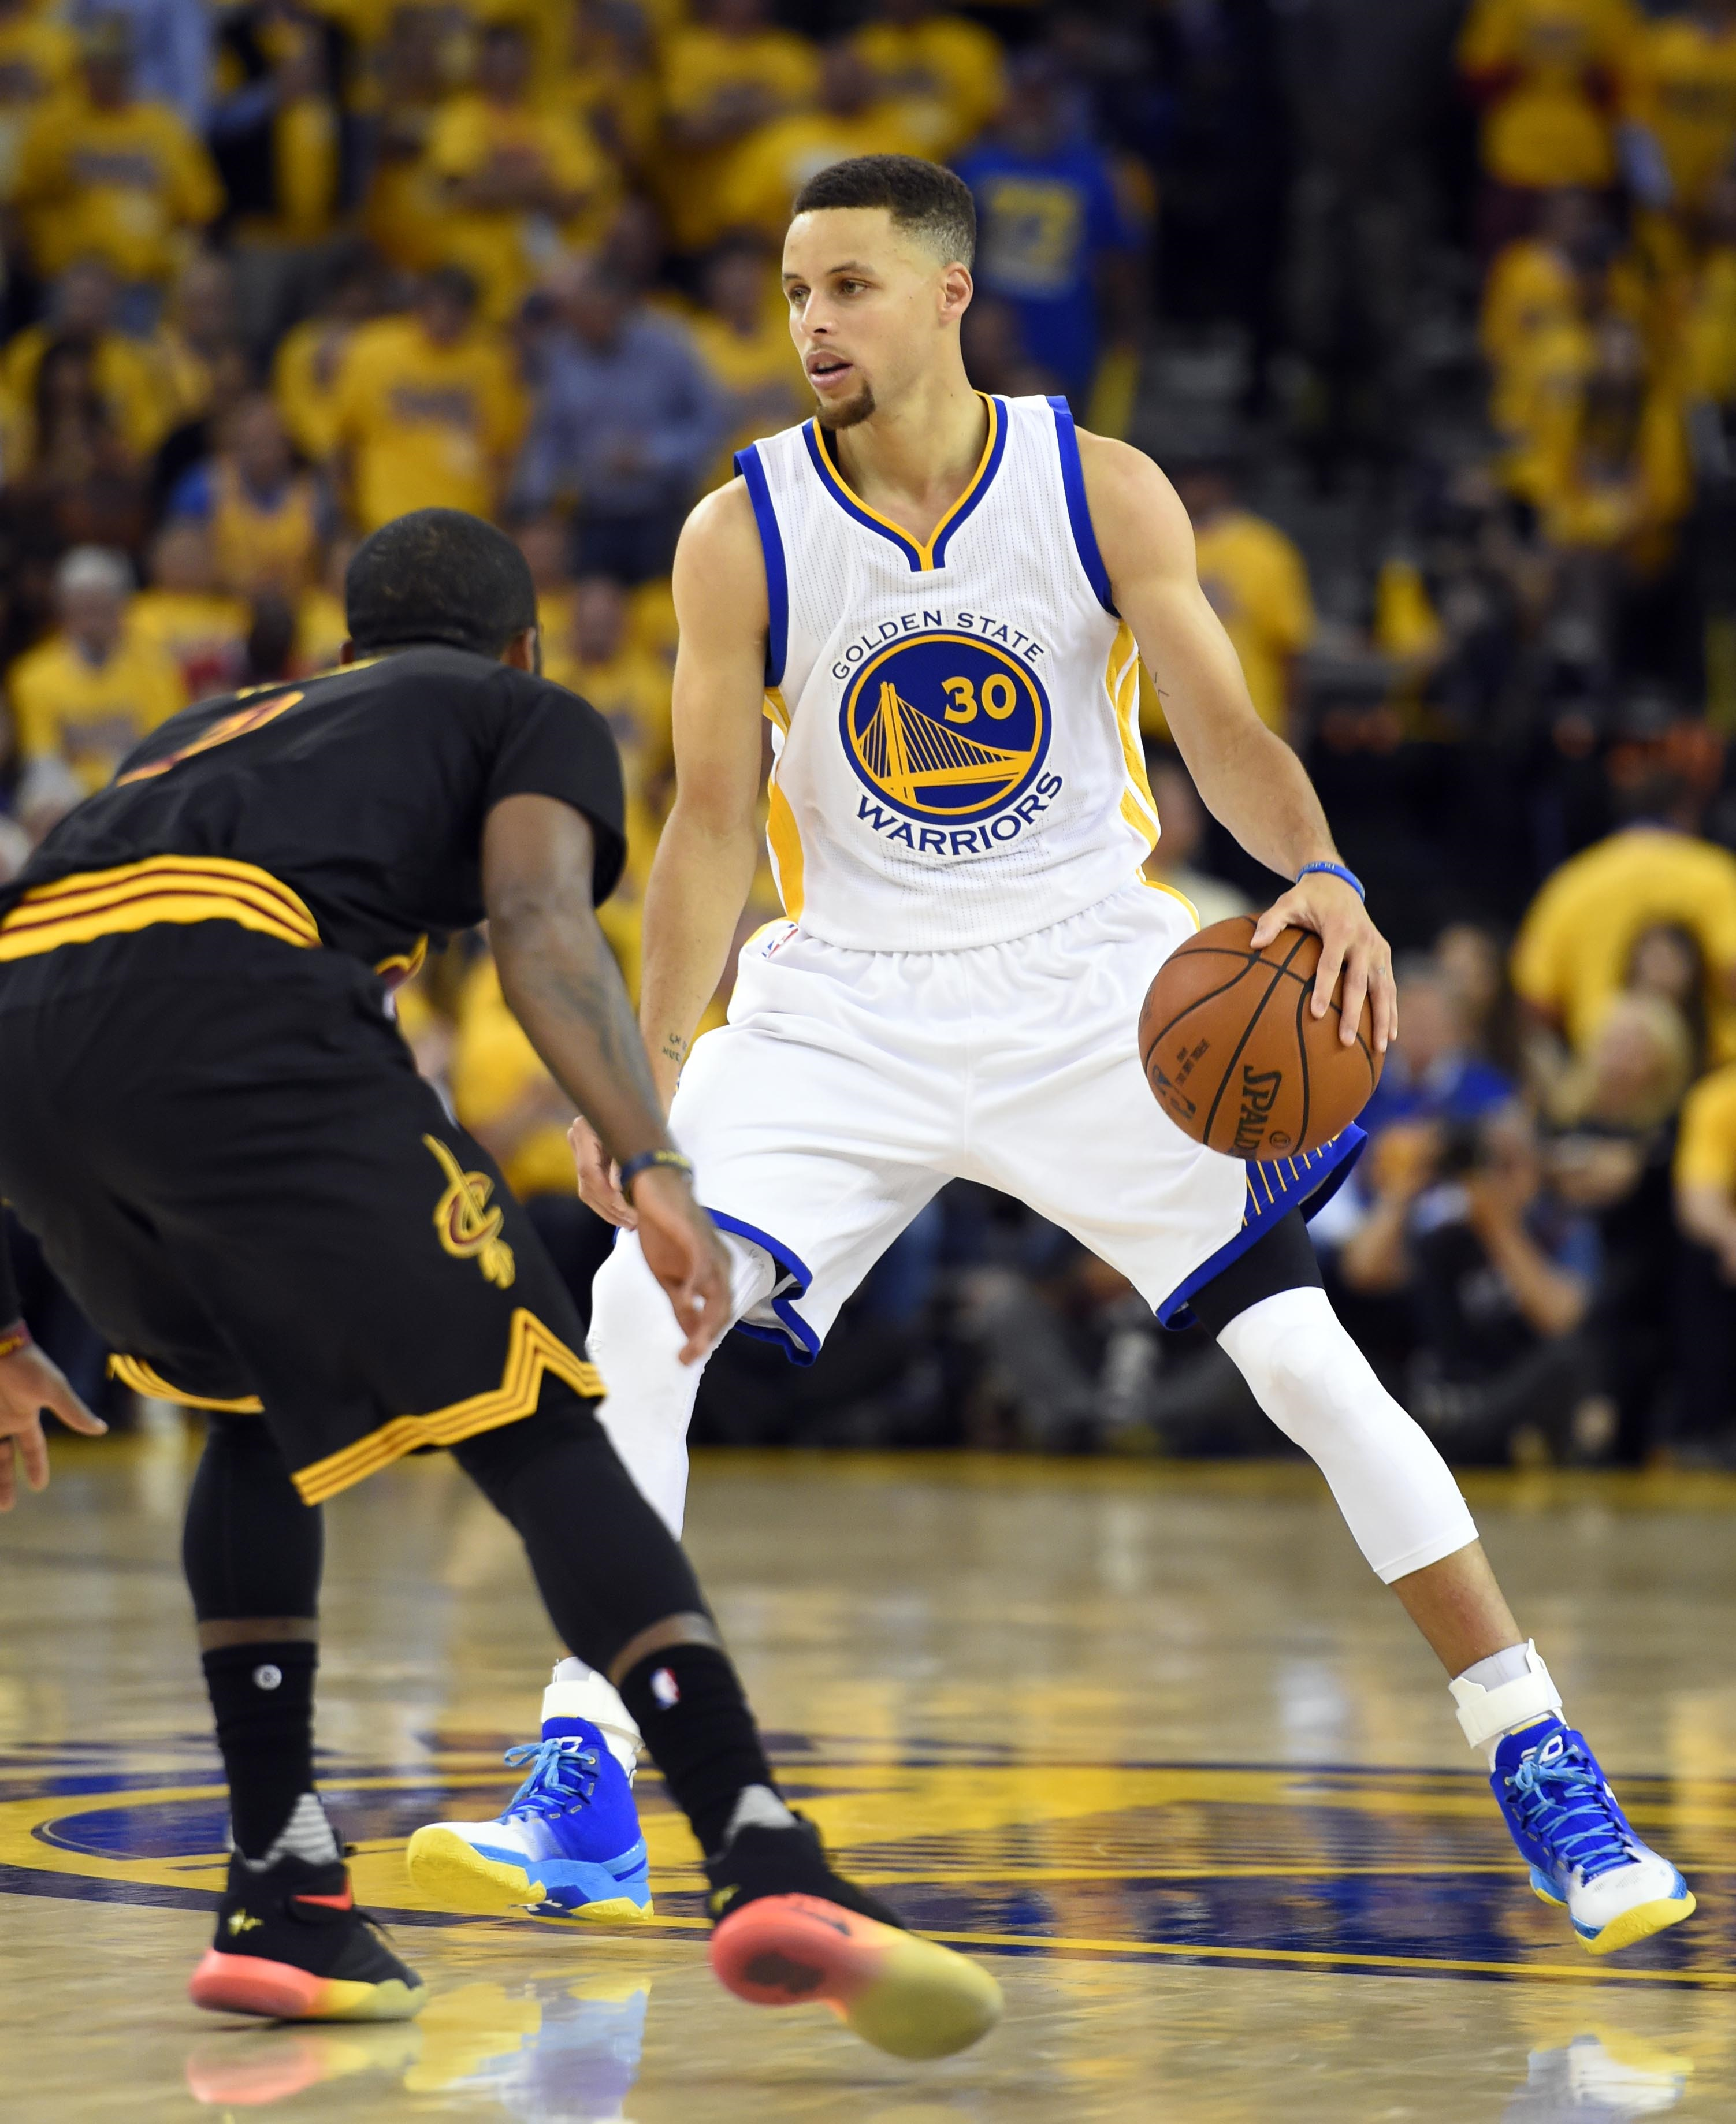 Amick: Steph Curry's status as NBA's best on the line | ABC10.com